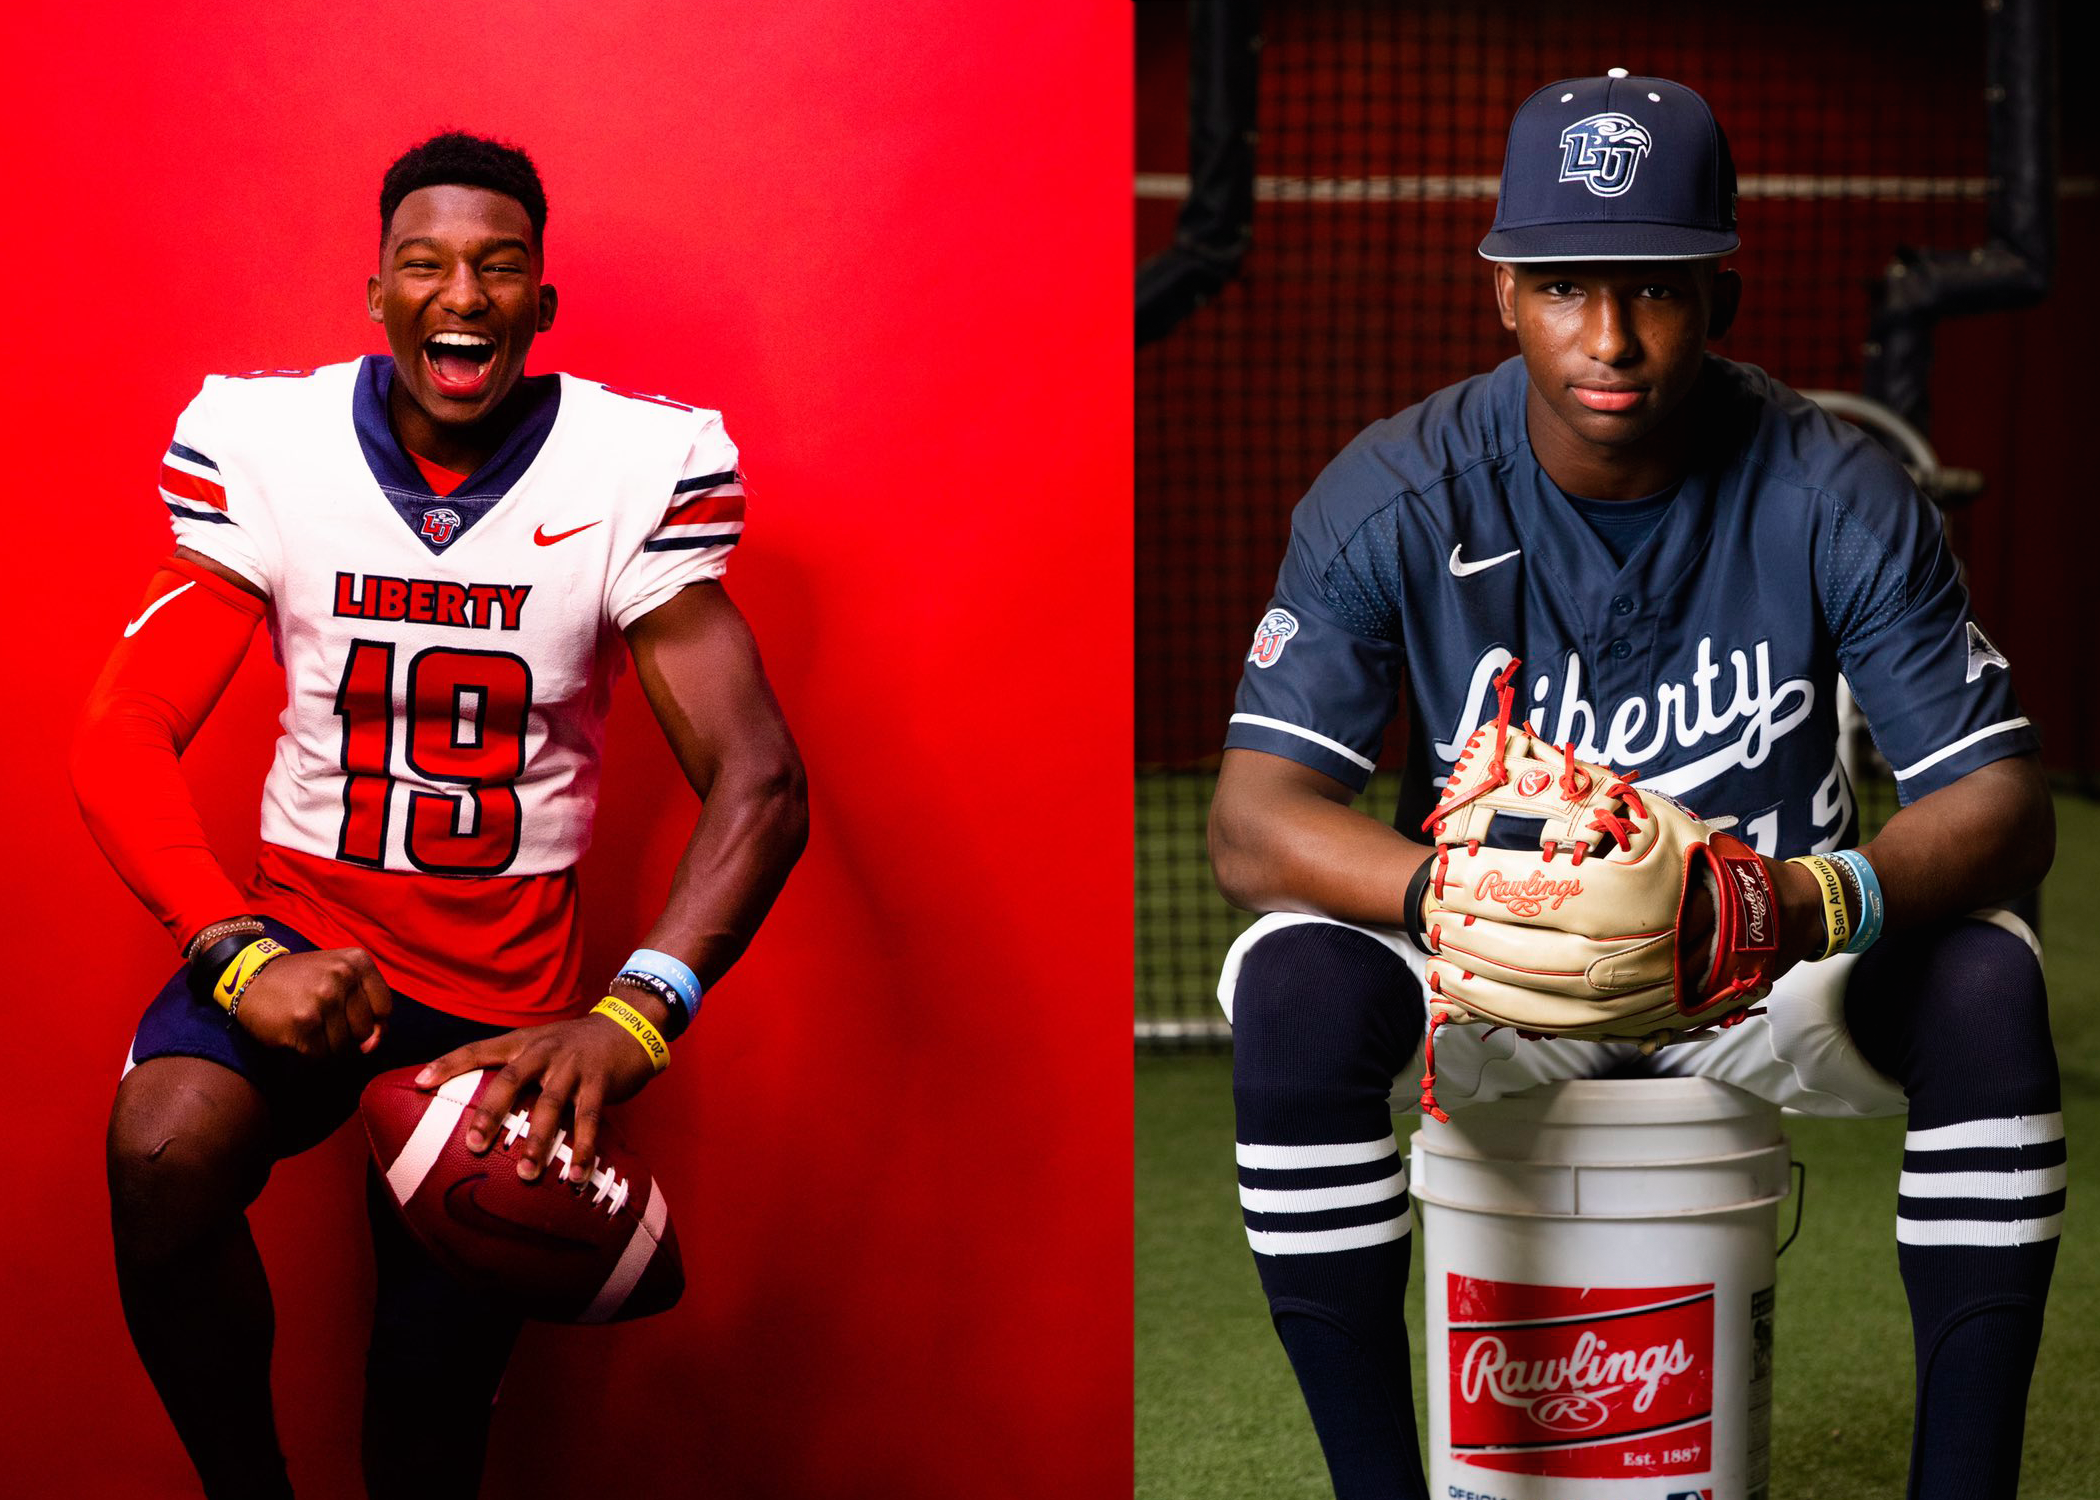 2022 3-Star DB and OF Brylan Green Commits To Liberty For Football and Baseball